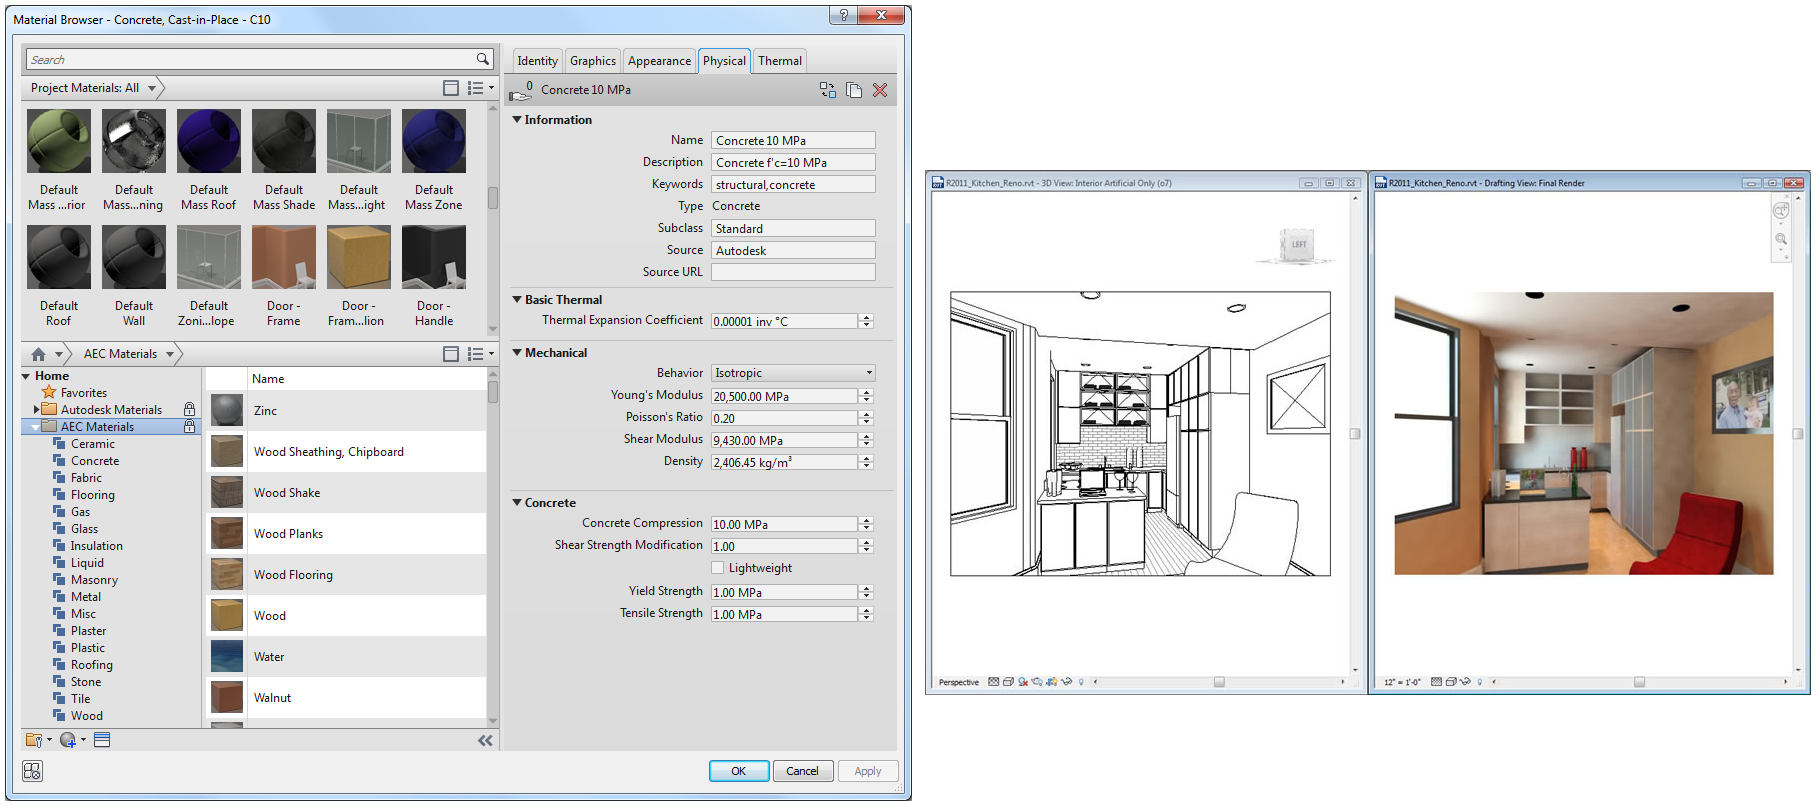 Revit 2014 -Materials UI Enhancements - CAD Services Limited